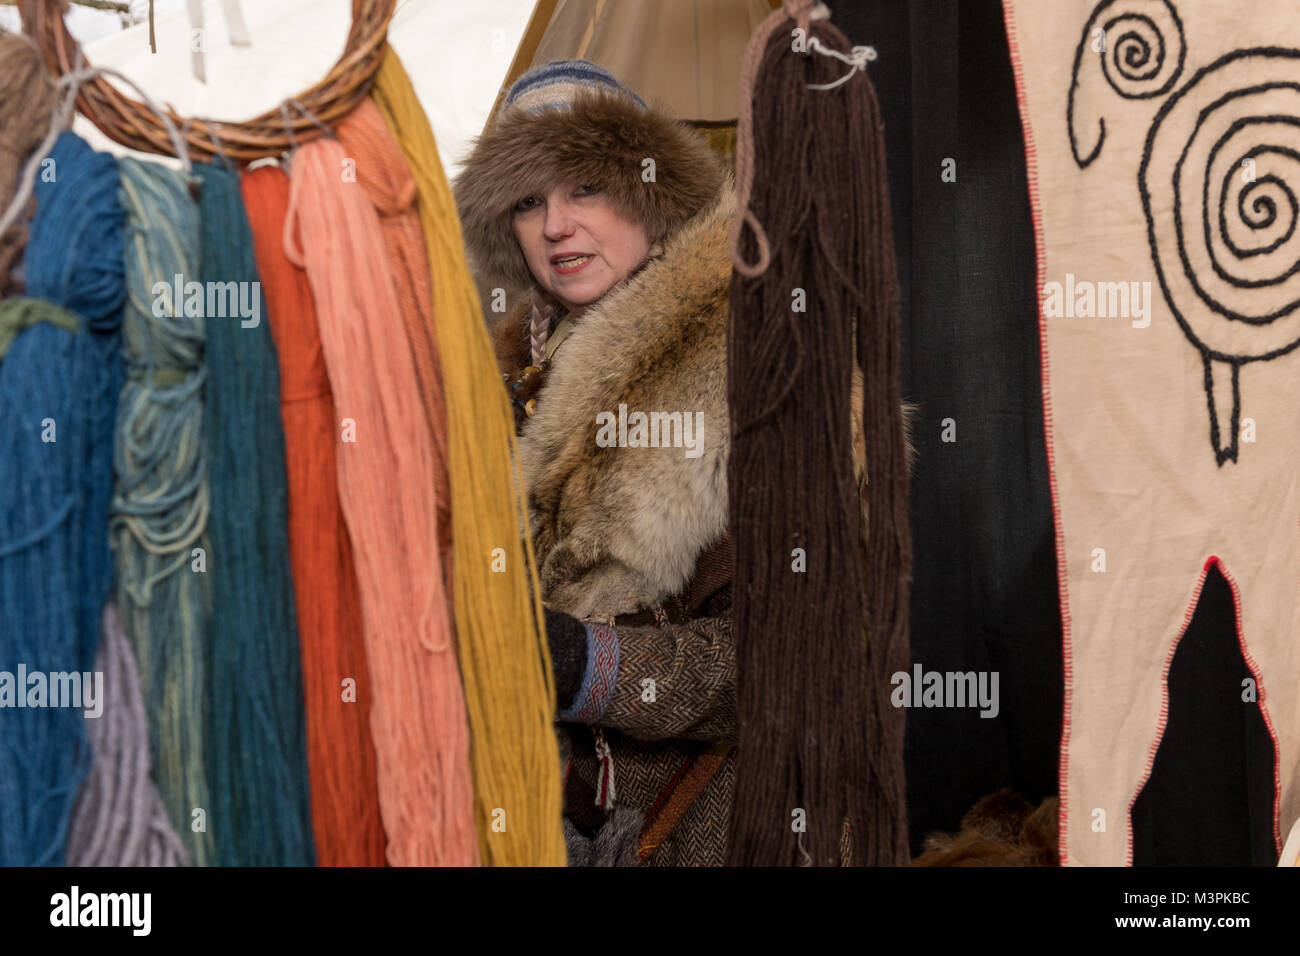 York, UK, 12th February 2018, Lady dressed as a Viking at the annual Jorvik Viking Festival. Standing by a market - Stock Image